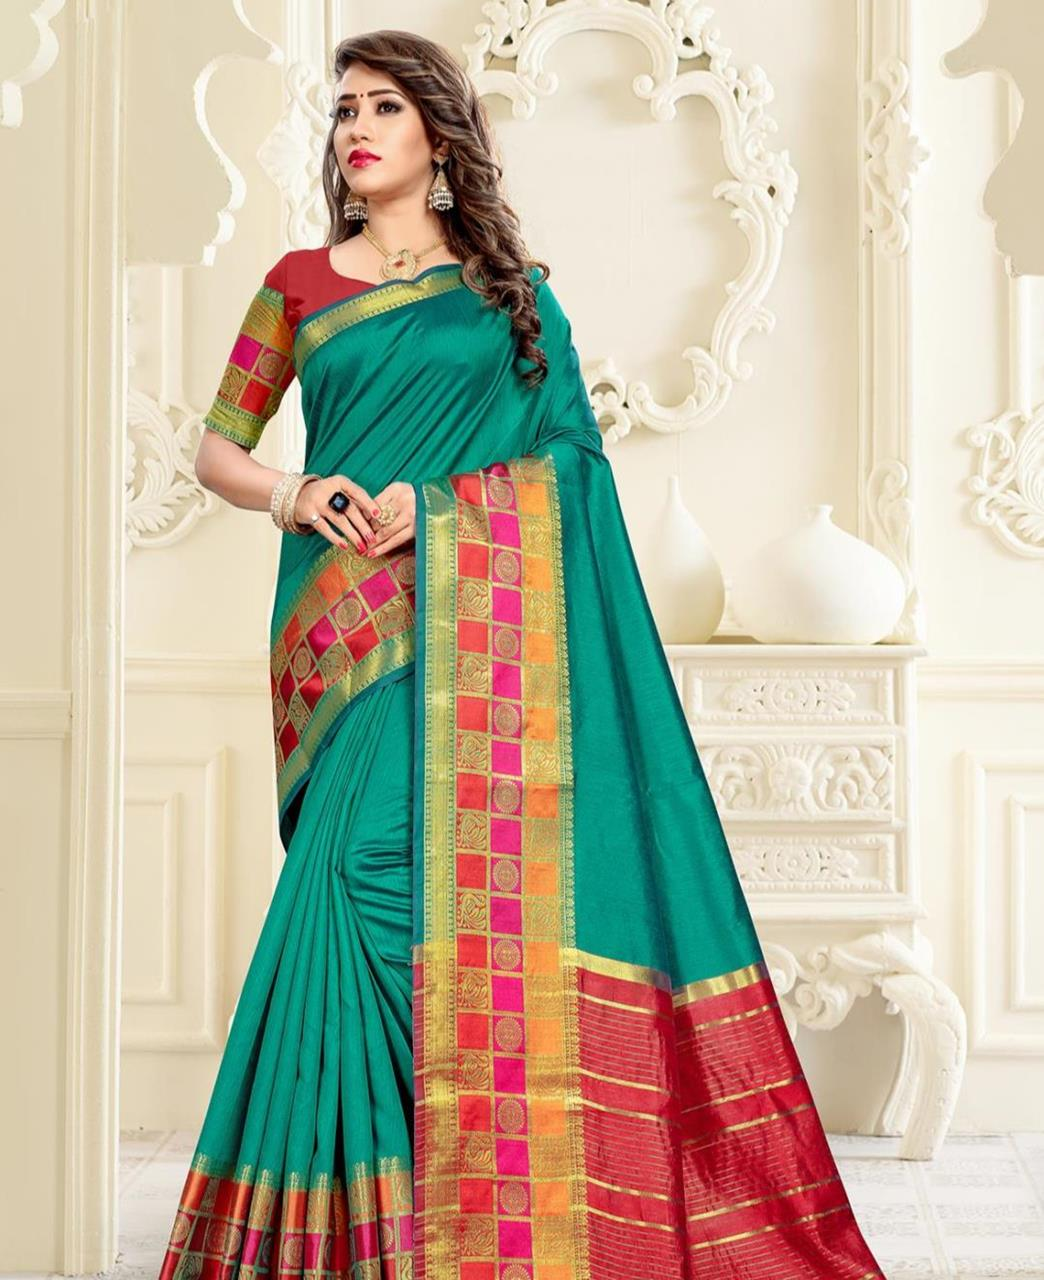 Cotton Saree in Teal Green